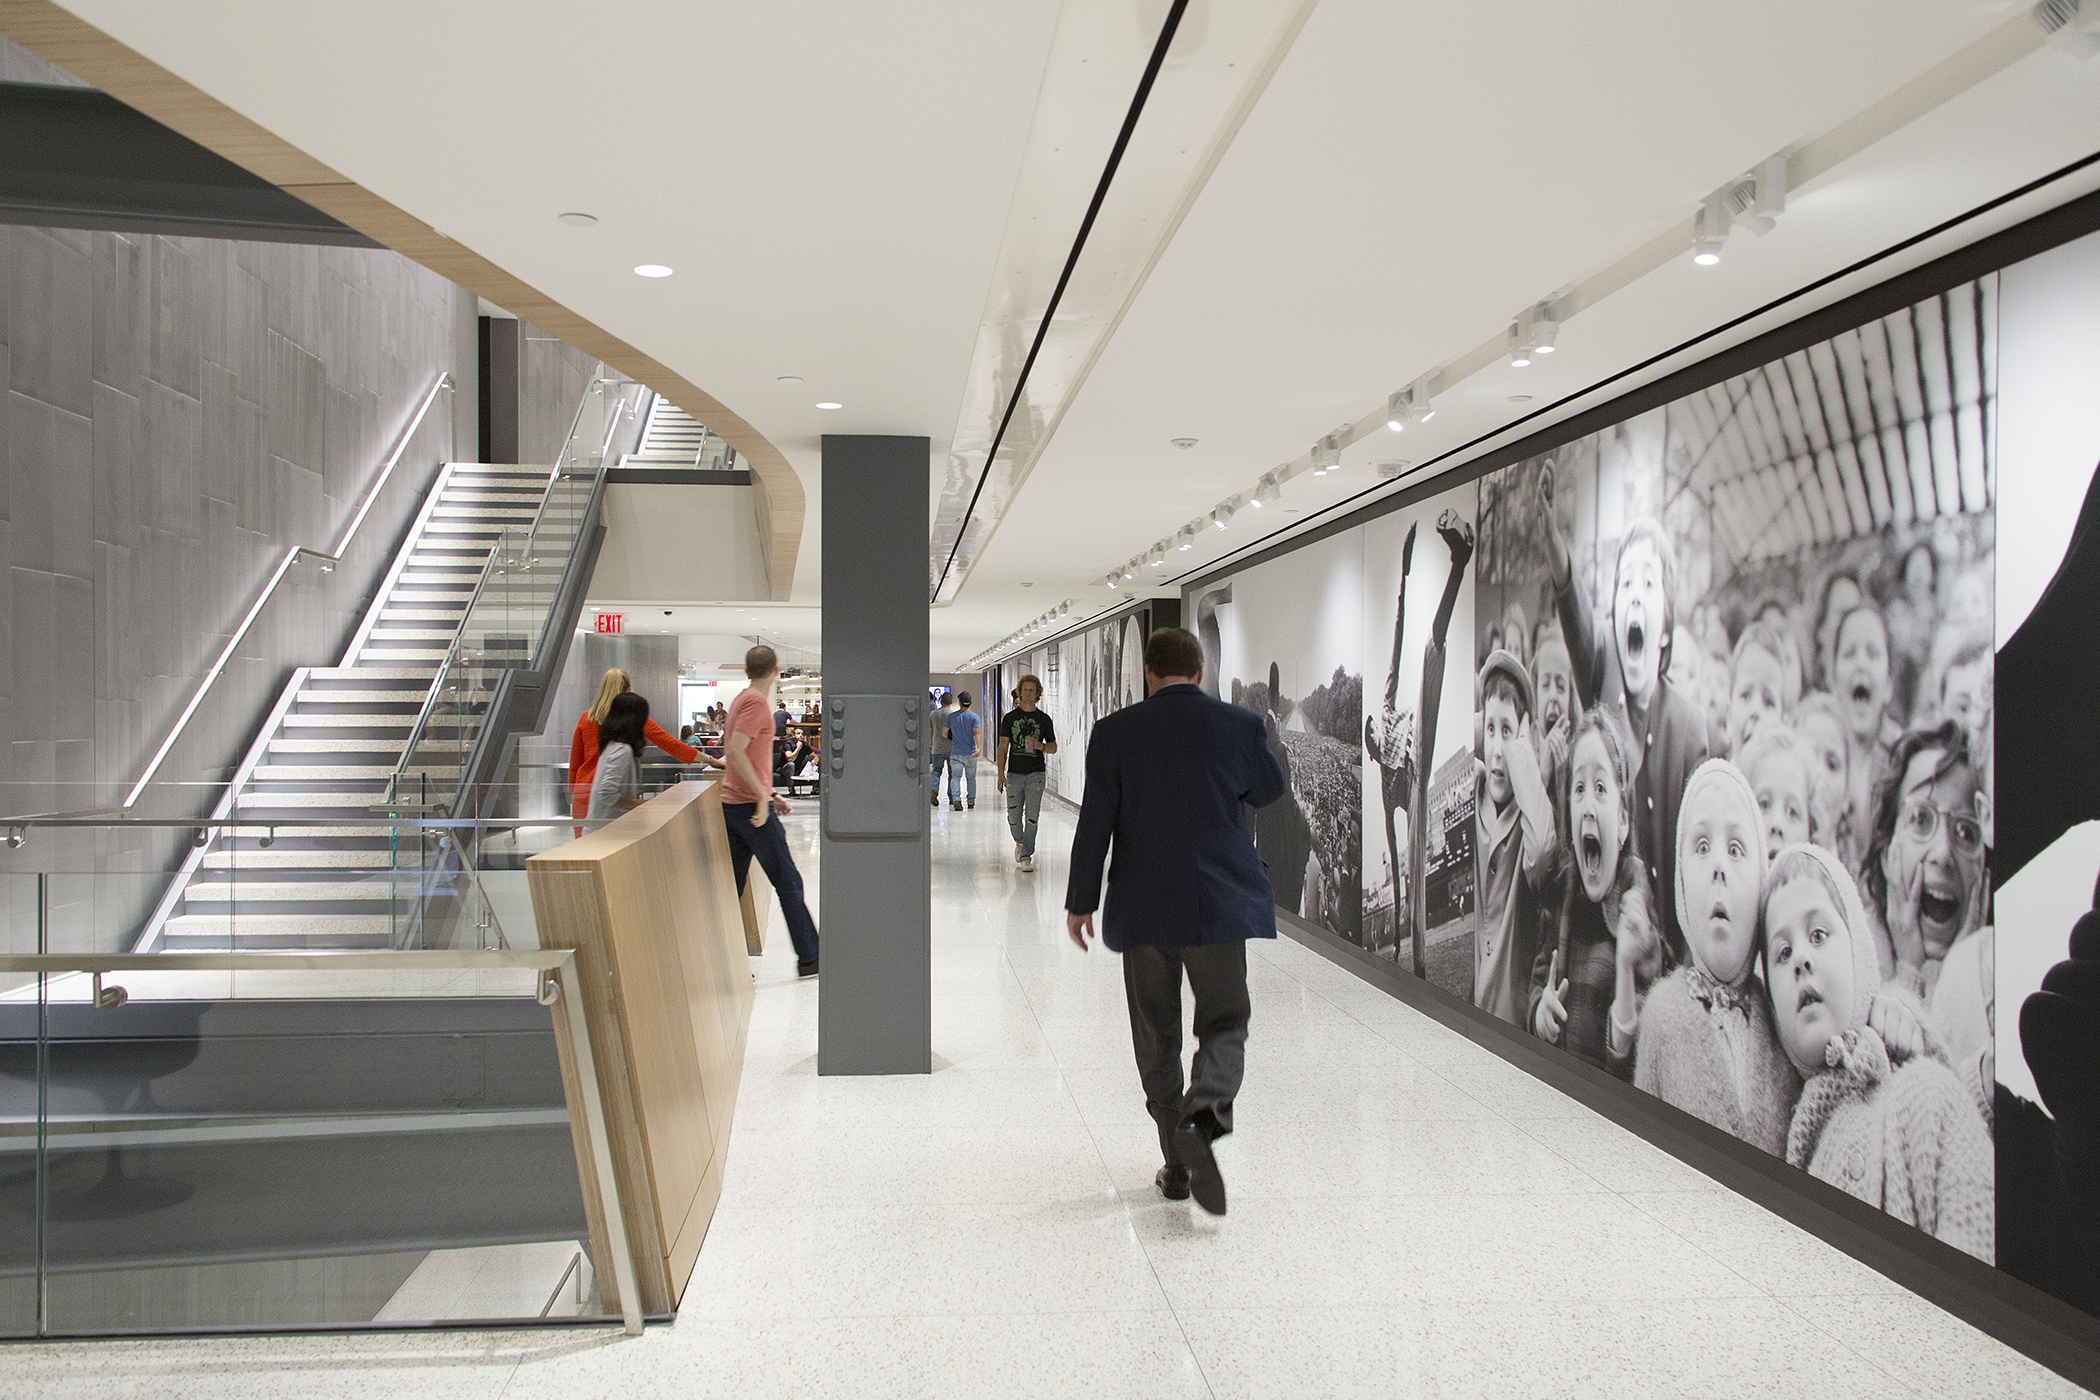 The stunning design of Time Inc.'s offices at 225 Liberty Street won CoreNet NYC's 2016 Project of the Year Award and feature a selection of mural-sized photographs from the Time-Life Picture Collection on the walls of each floor.